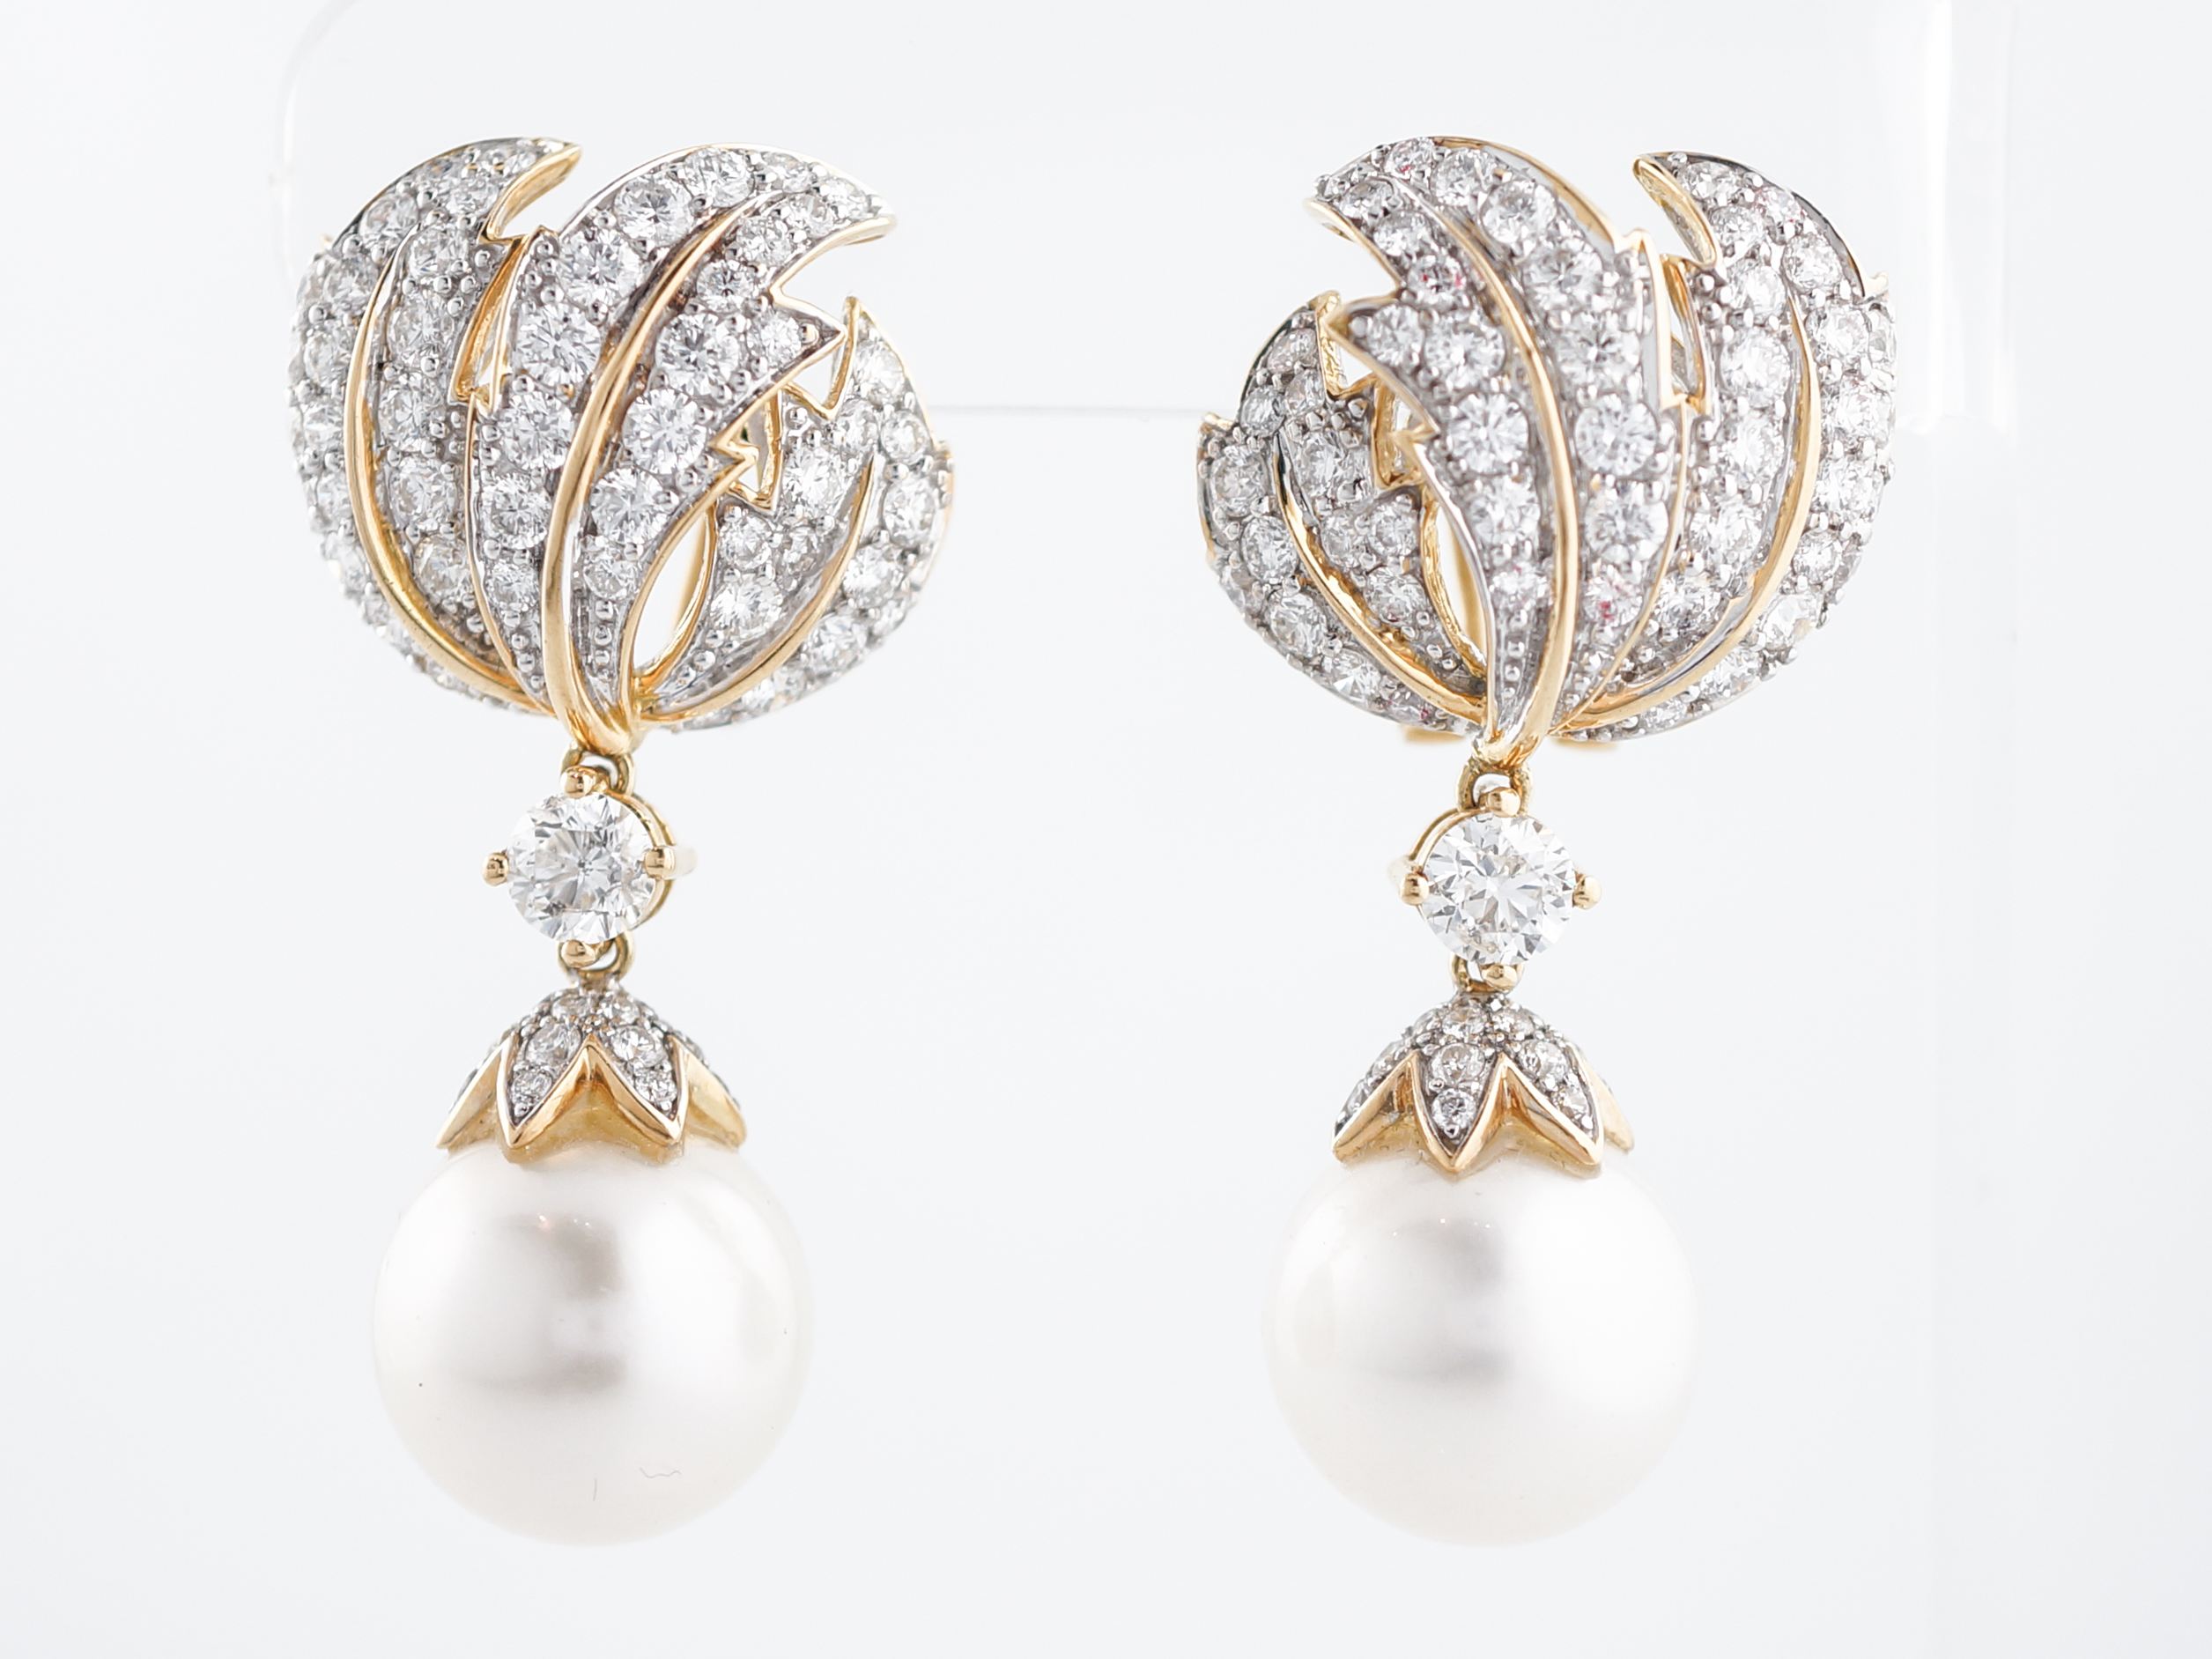 jewelry diamond and pearls products fetneh blake collections south circlepearlfront pearl sea earrings